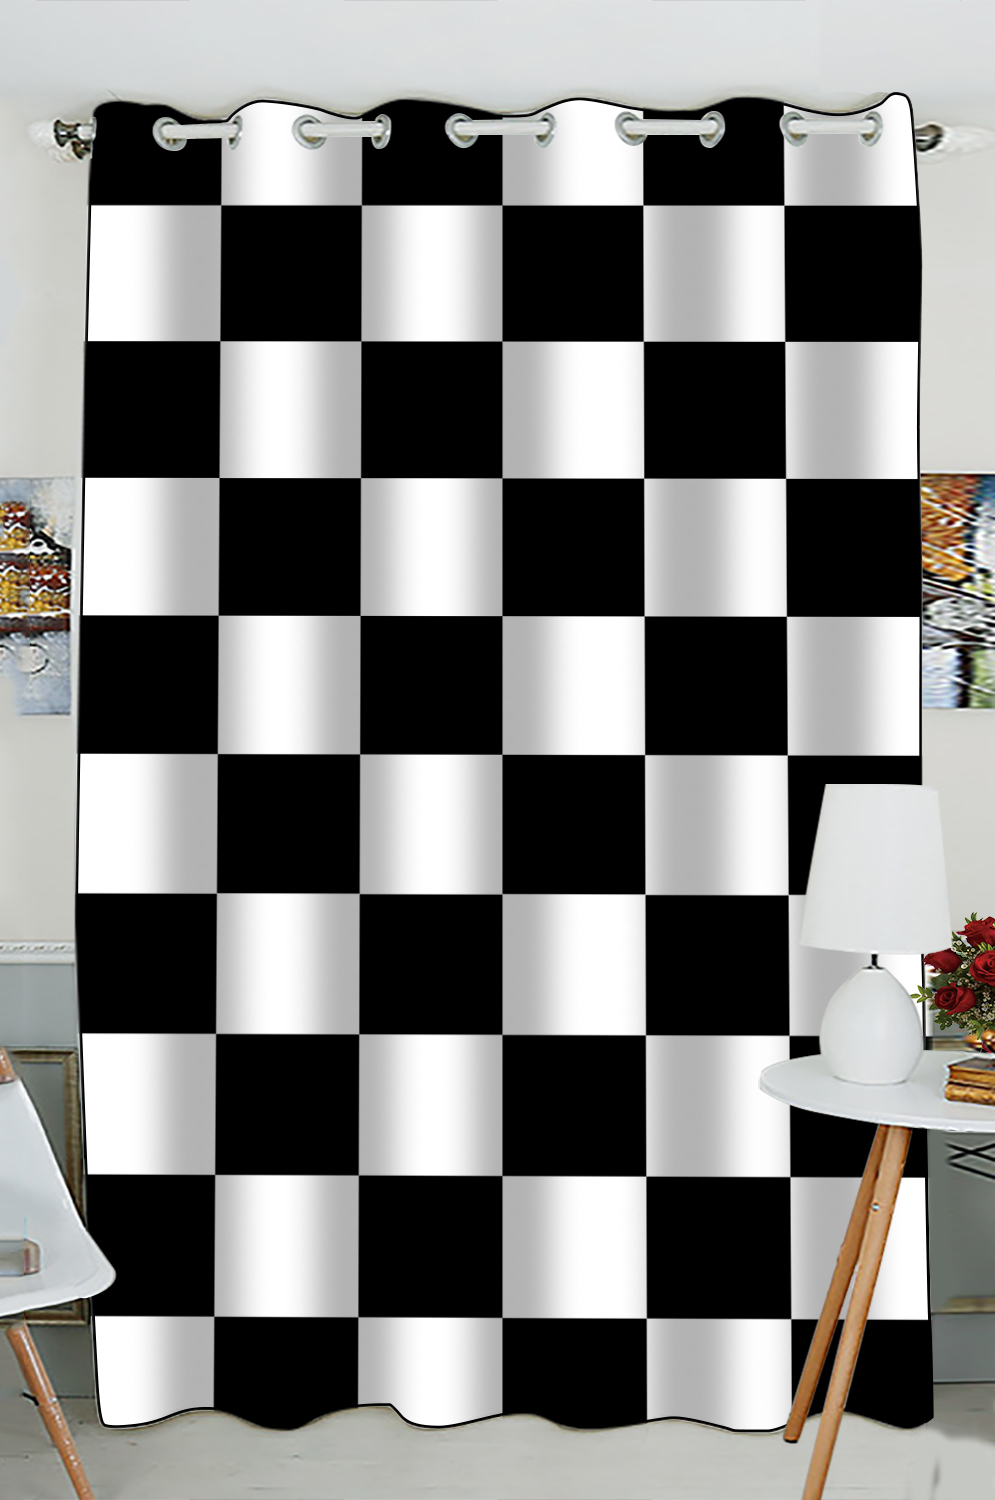 GCKG Checkered Window CurtainBlack White Checkered Pattern Grommet Blackout Curtain Room